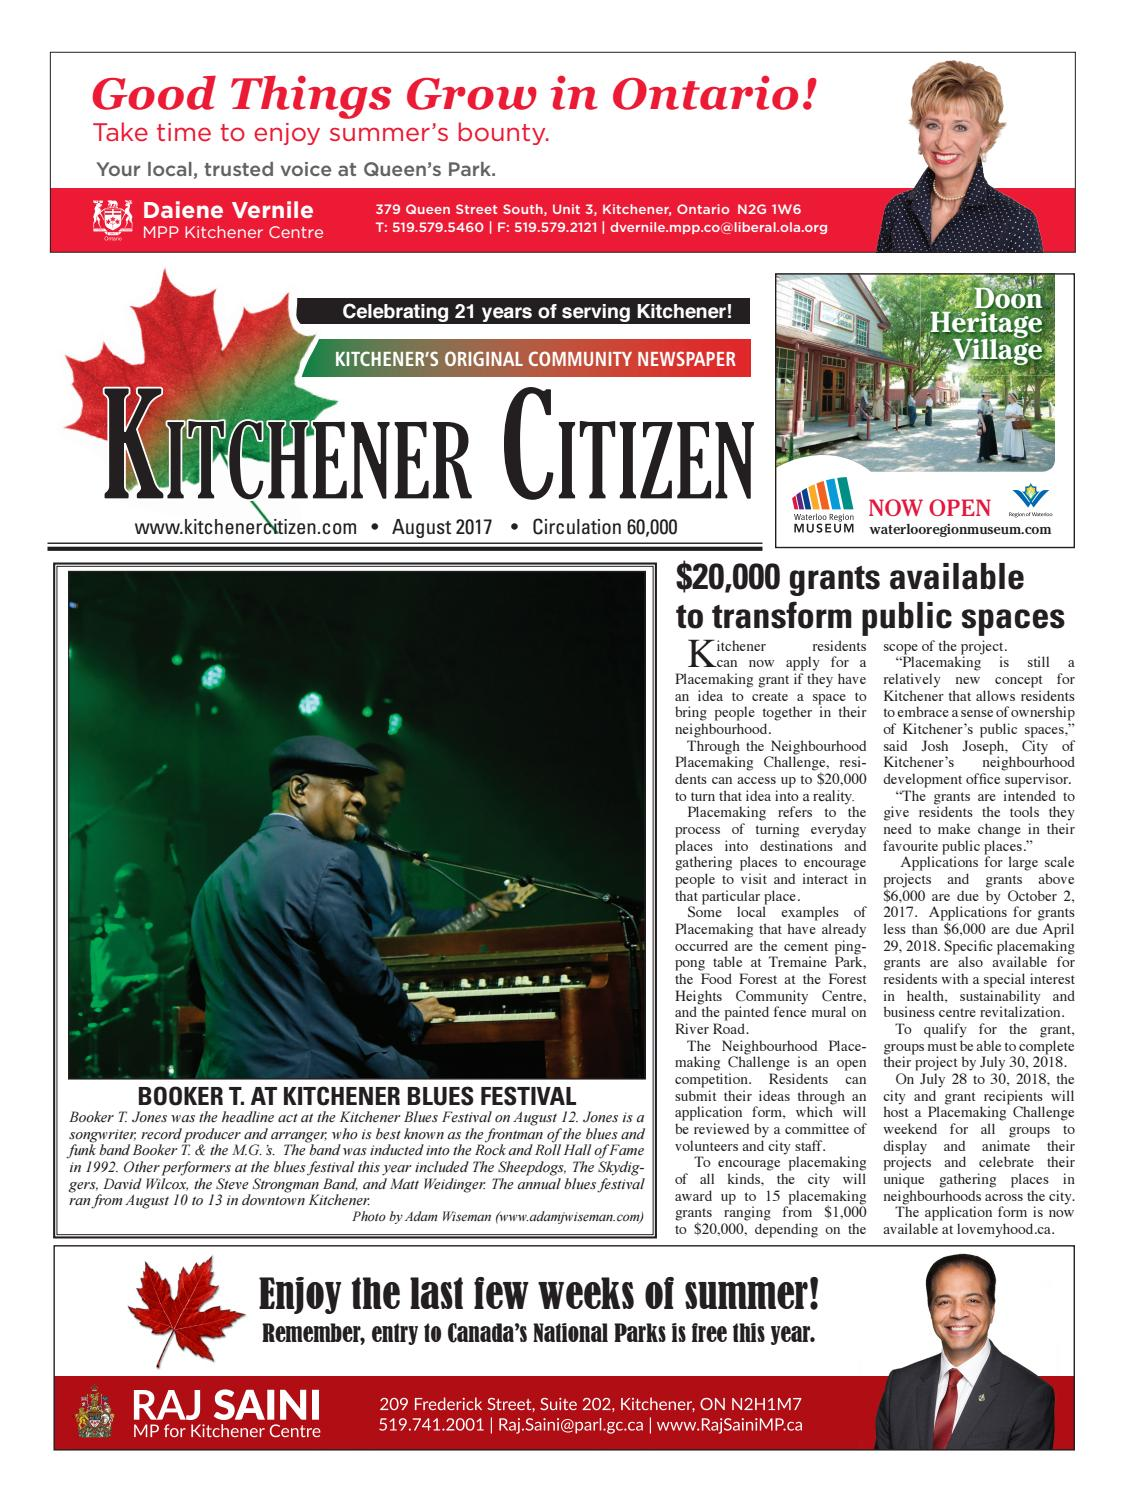 Kitchener Citizen - August 2017 by Kitchener Citizen - issuu